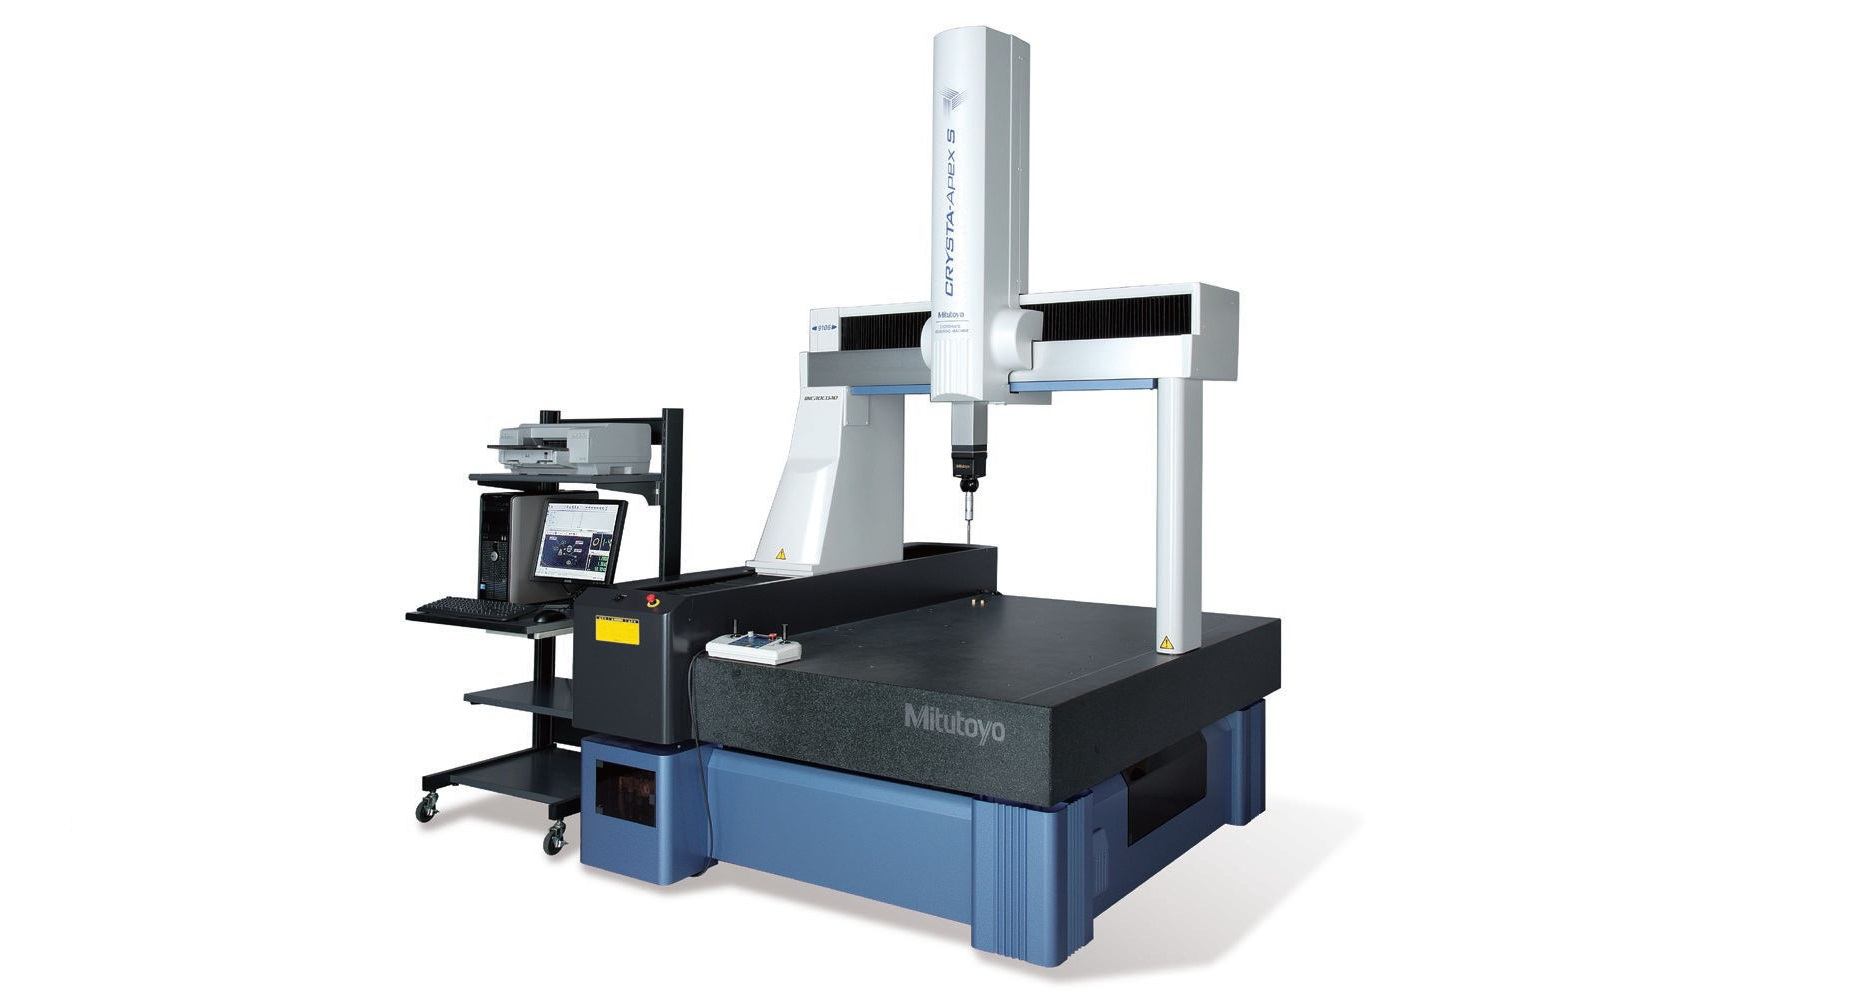 Bridge-type CNC coordinate measuring machine (CMM)